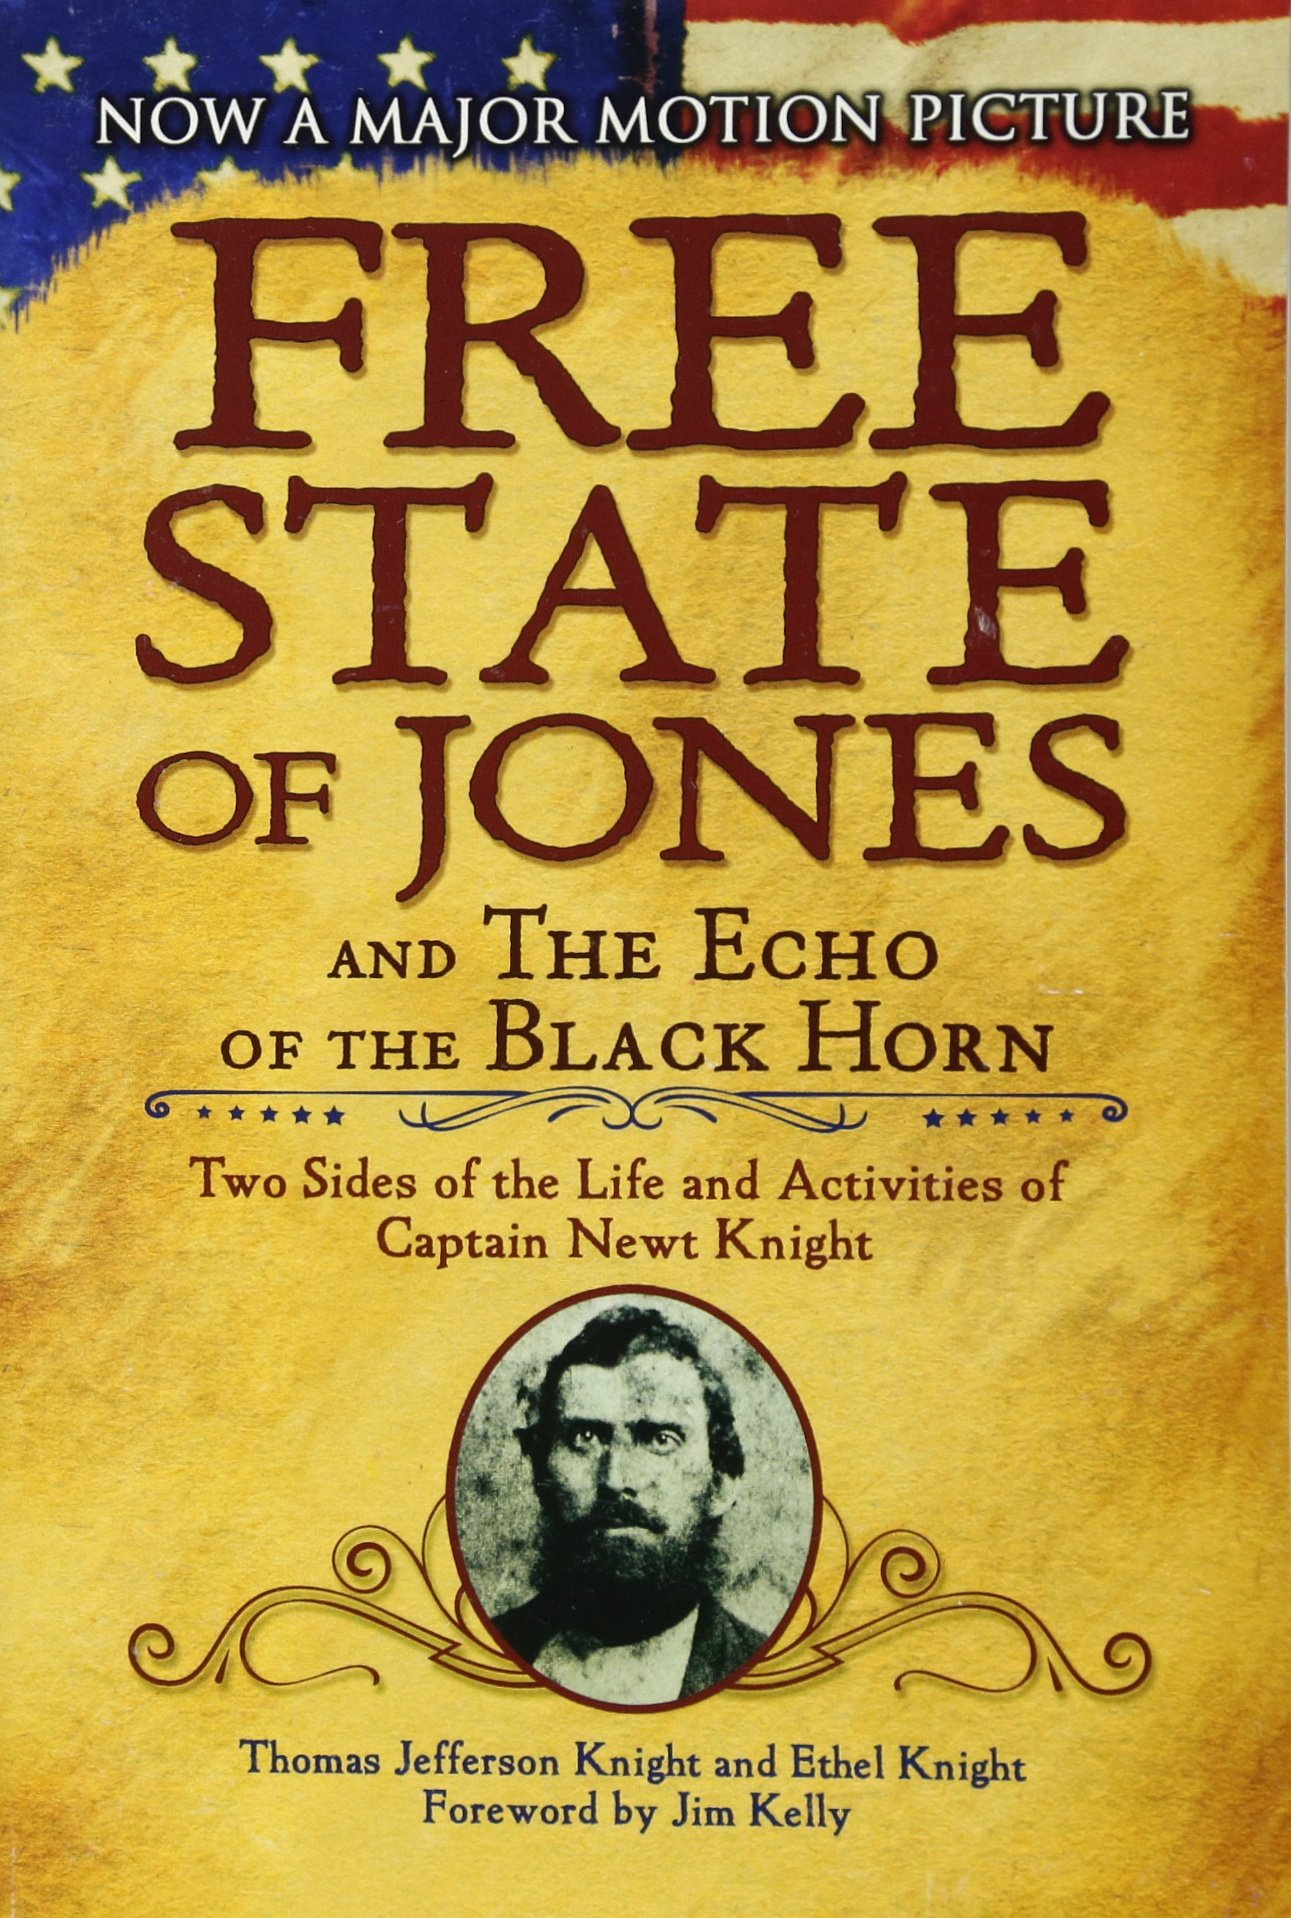 Download The Free State of Jones and The Echo of the Black Horn: Two Sides of the Life and Activities of Captain Newt Knight pdf epub